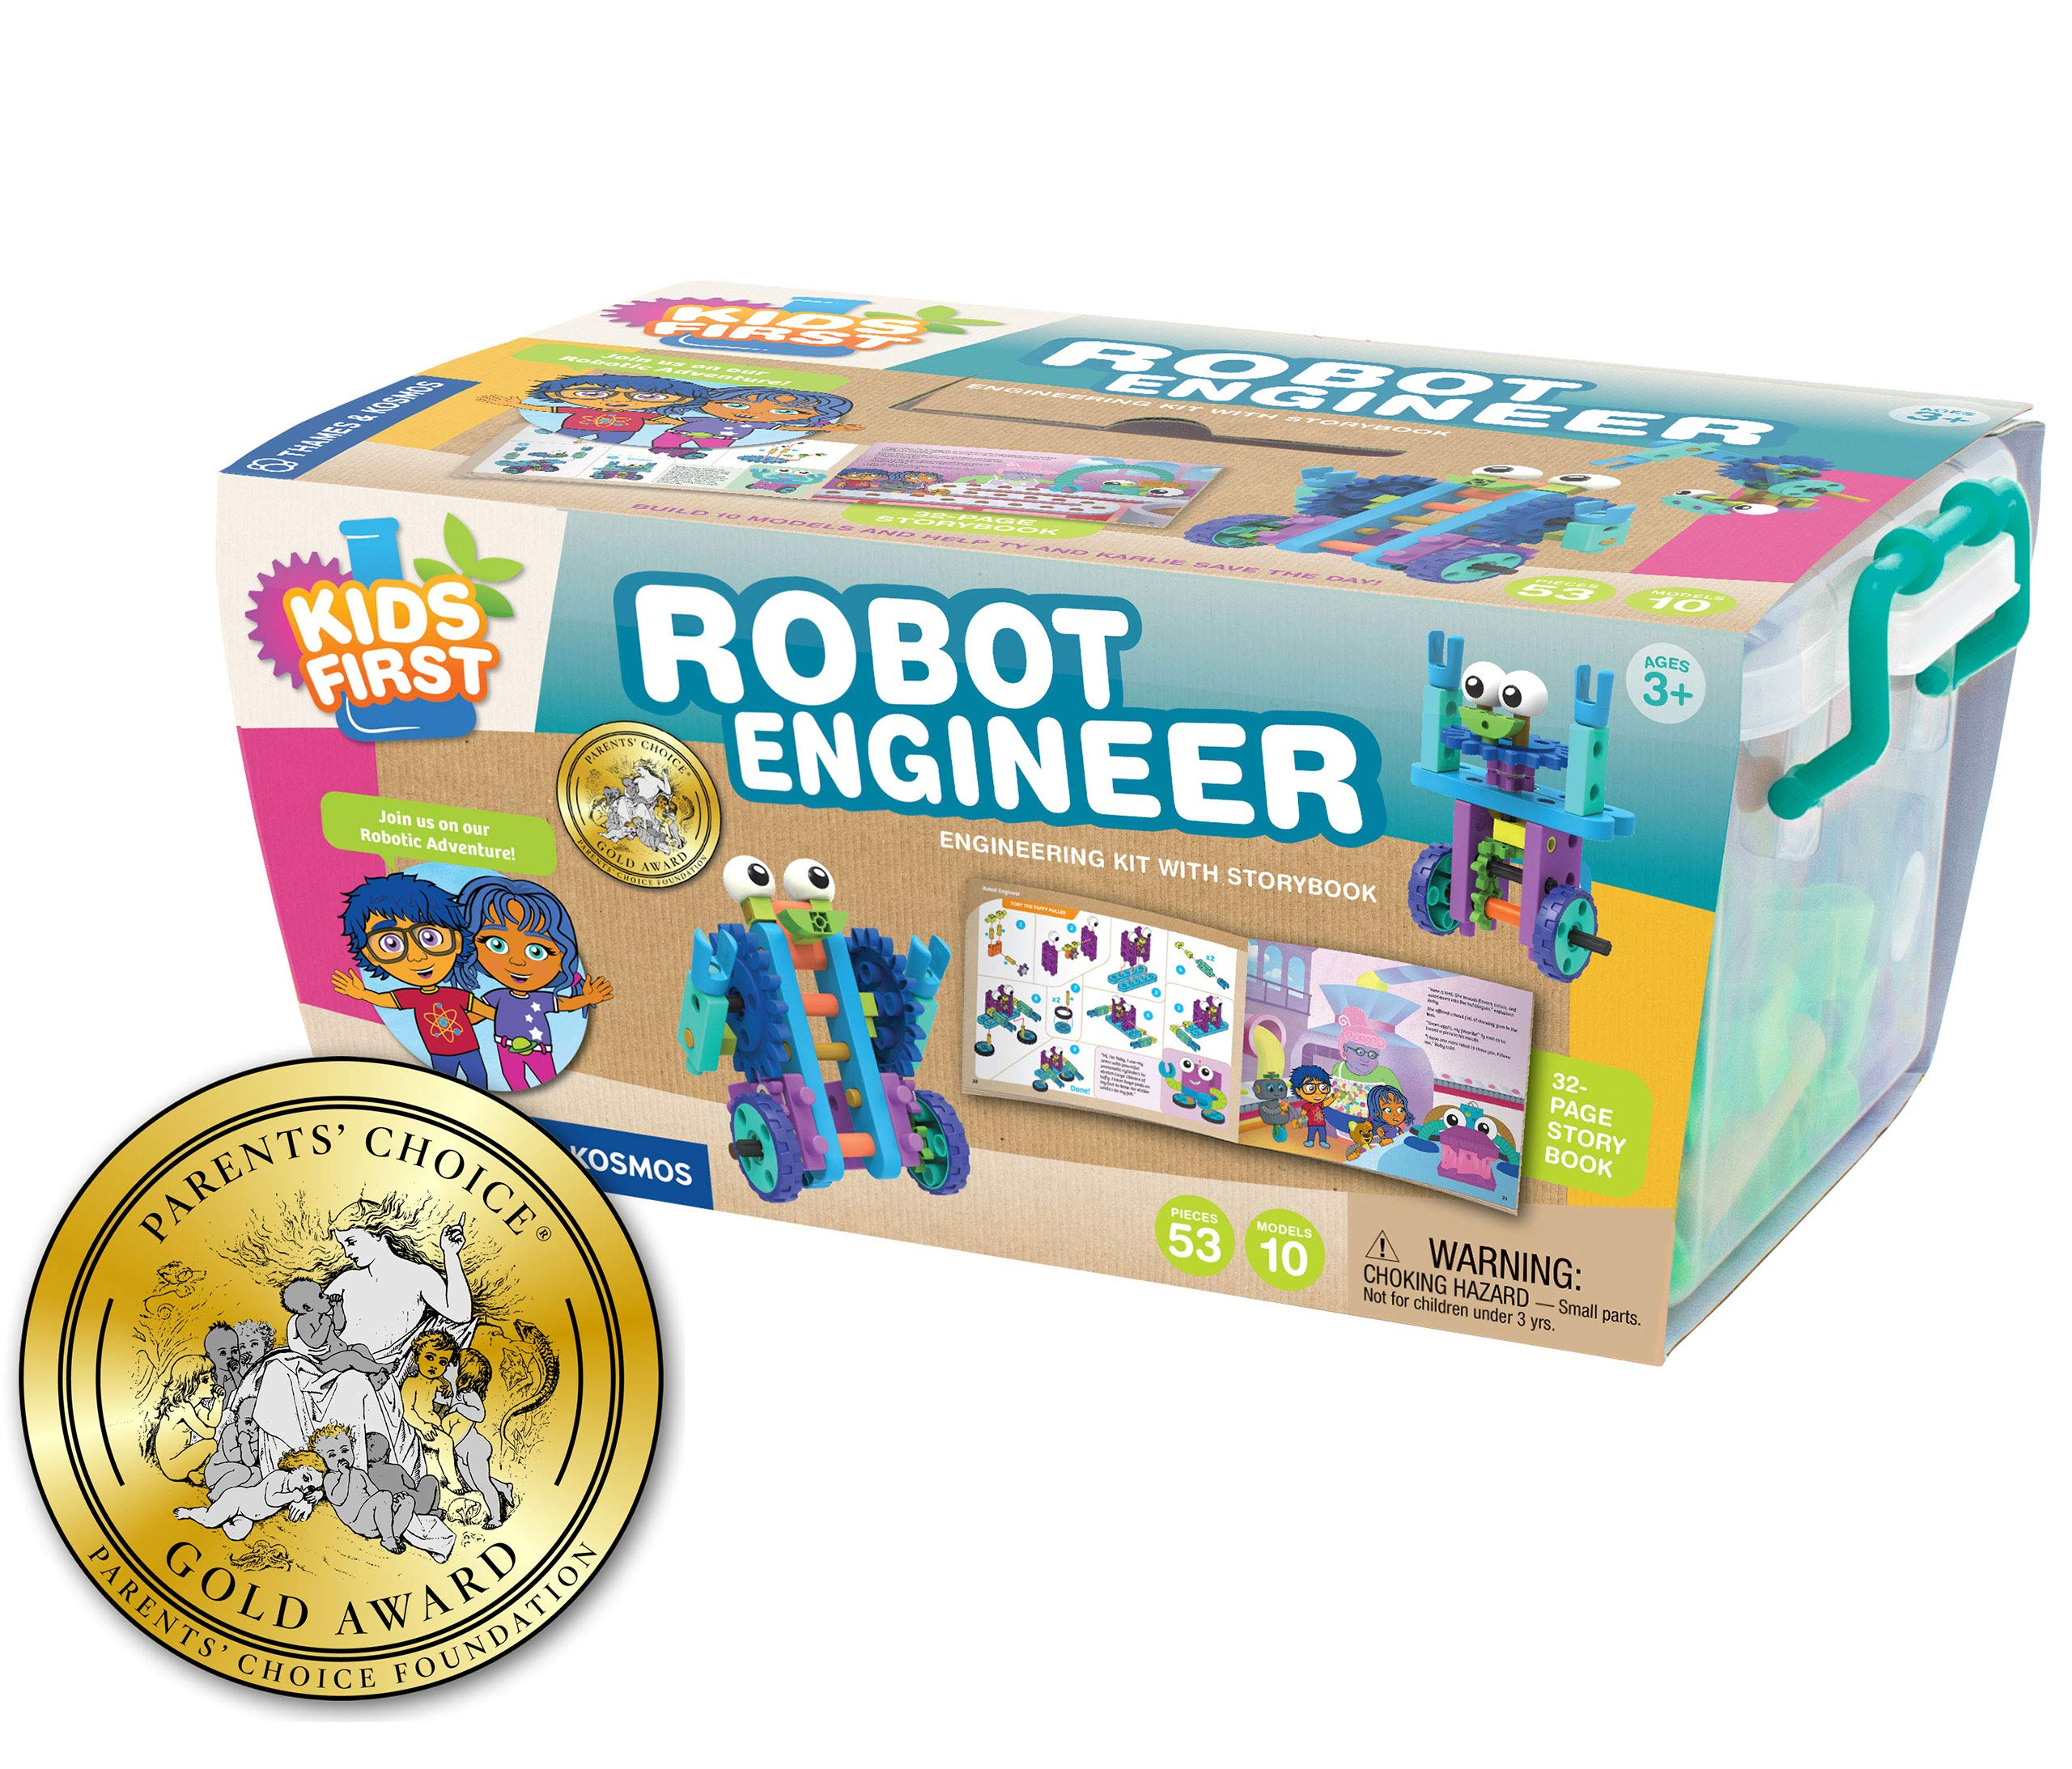 Kids First Robot Engineer Kit and Storybook by Thames & Kosmos